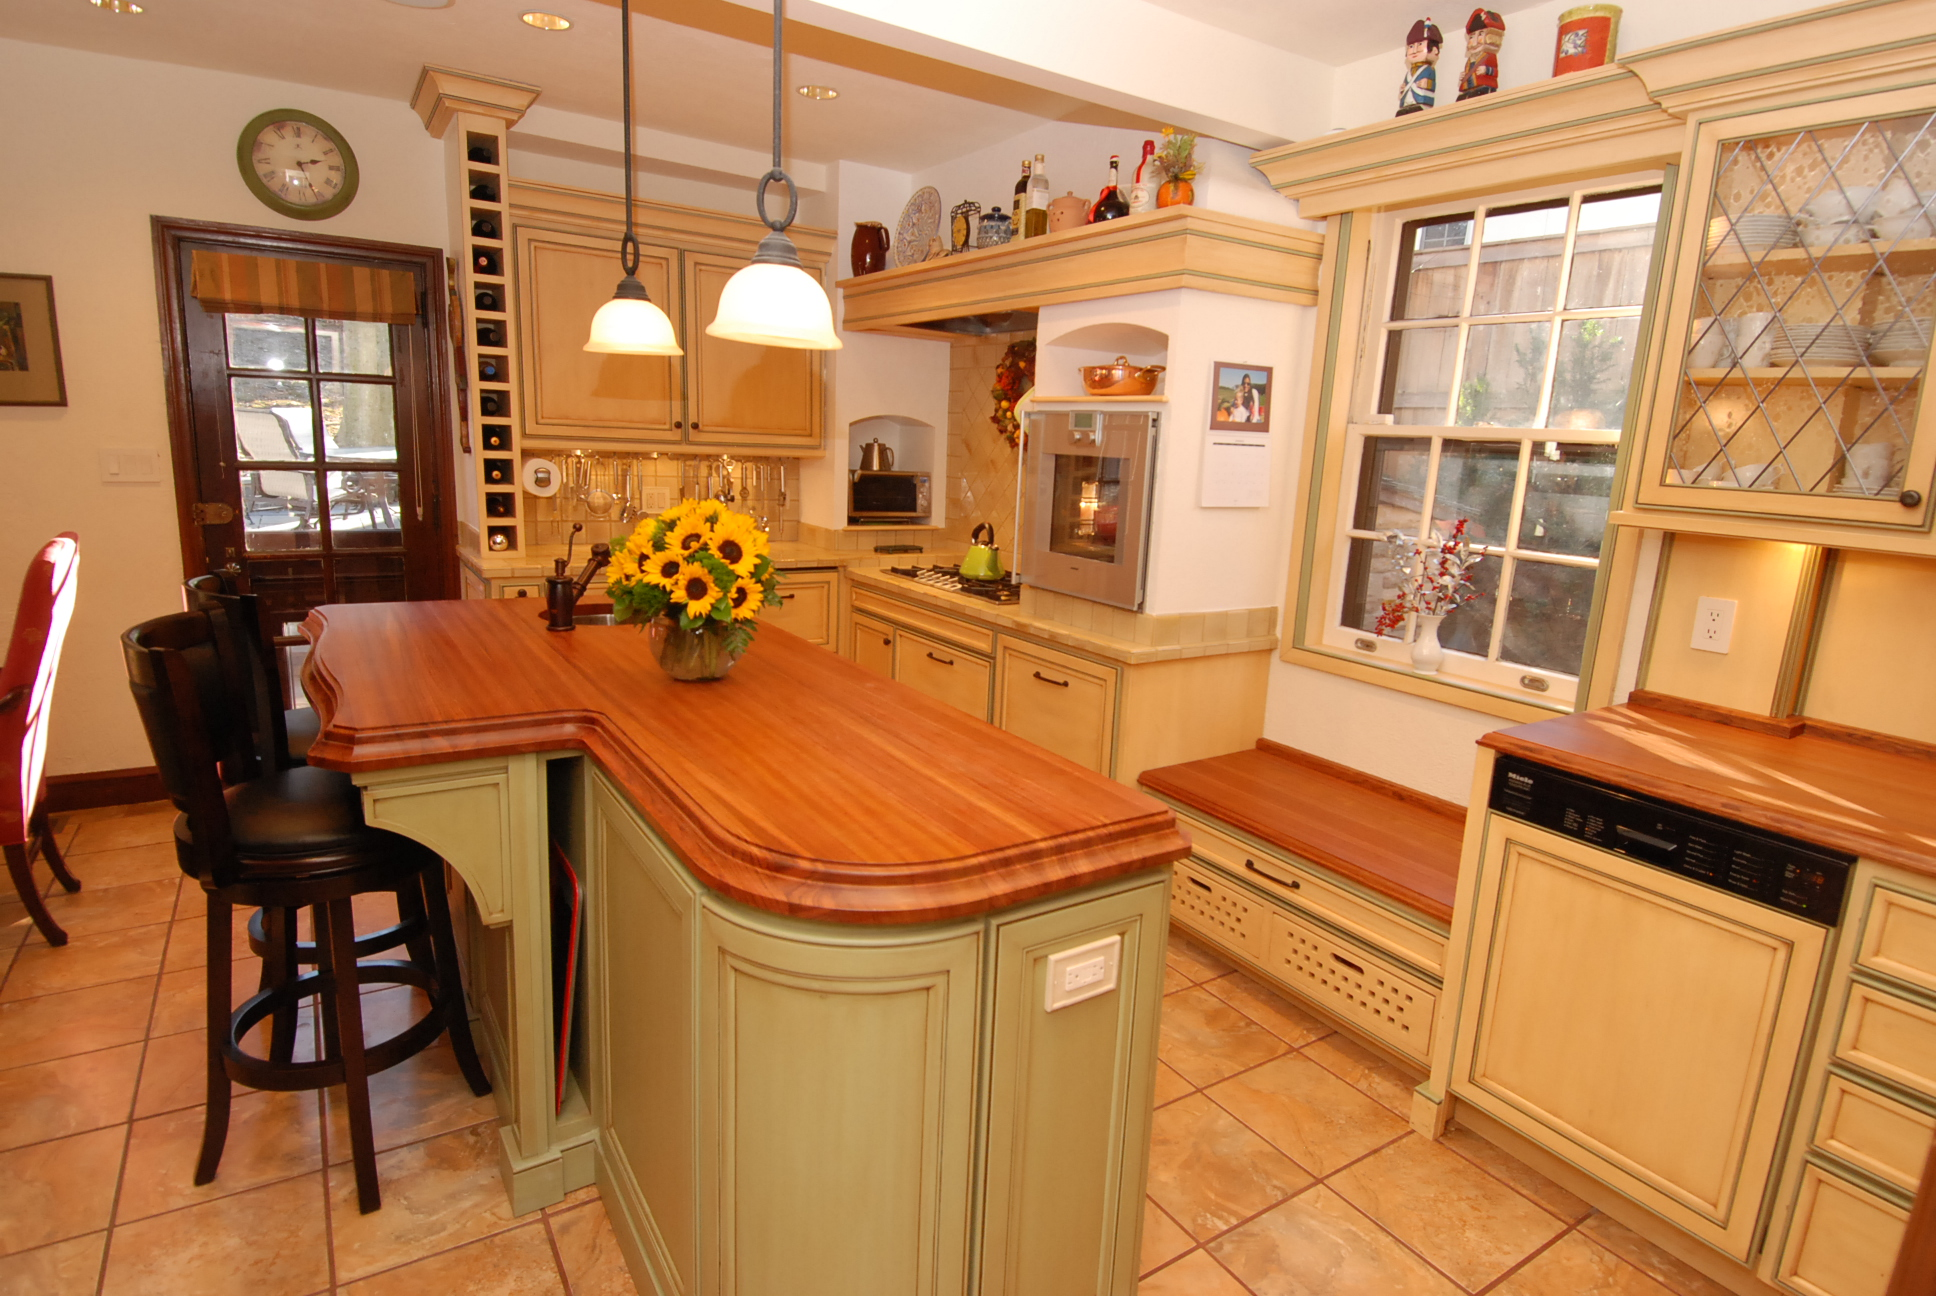 Butcher Block Countertops Care Caring For Wooden Countertops Cabinets By Graber